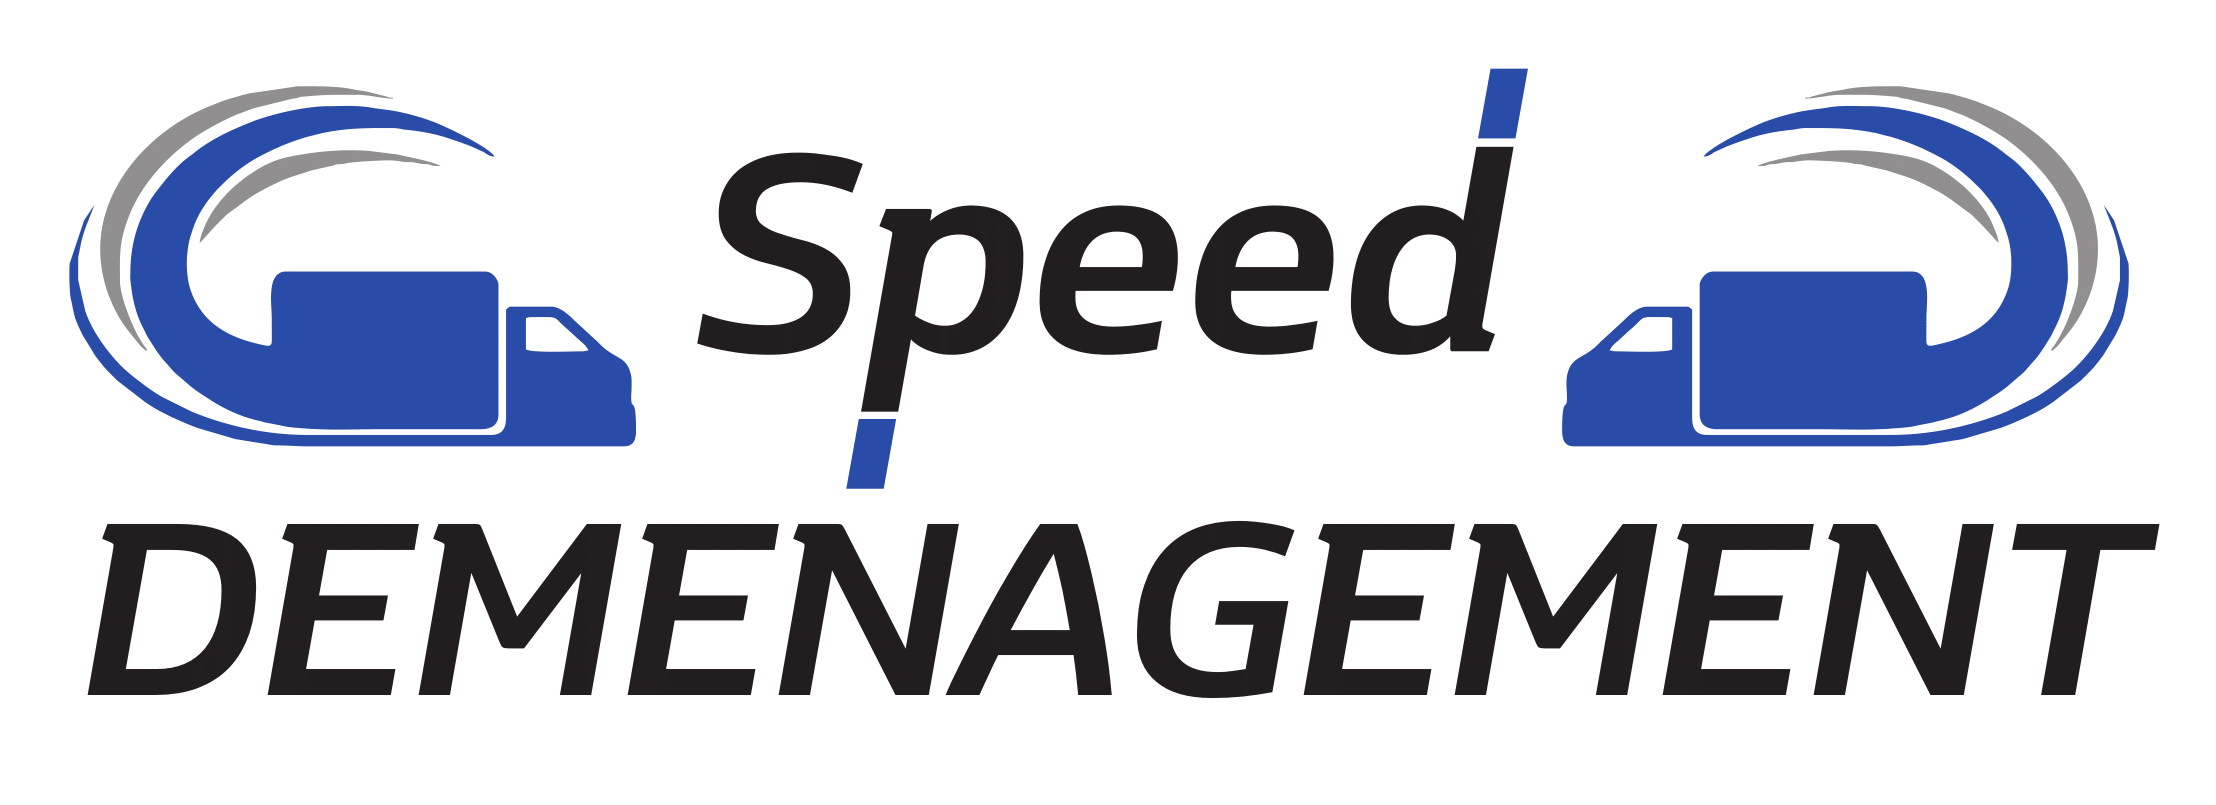 Speed Demenagement